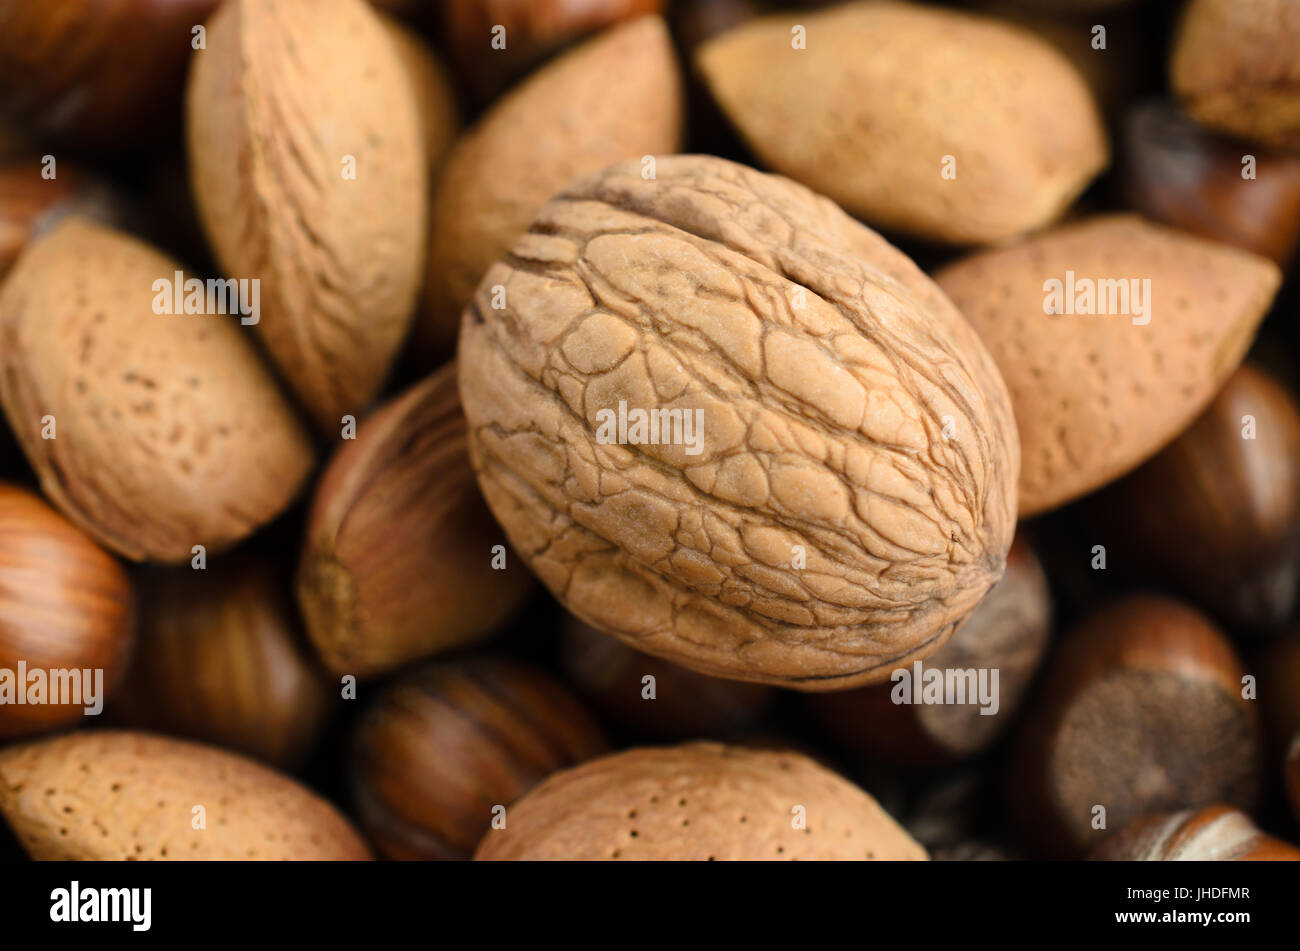 Overhead shot of a selection of whole, mixed nuts in  shells.  Main focus on walnut, with almonds and chestnuts - Stock Image